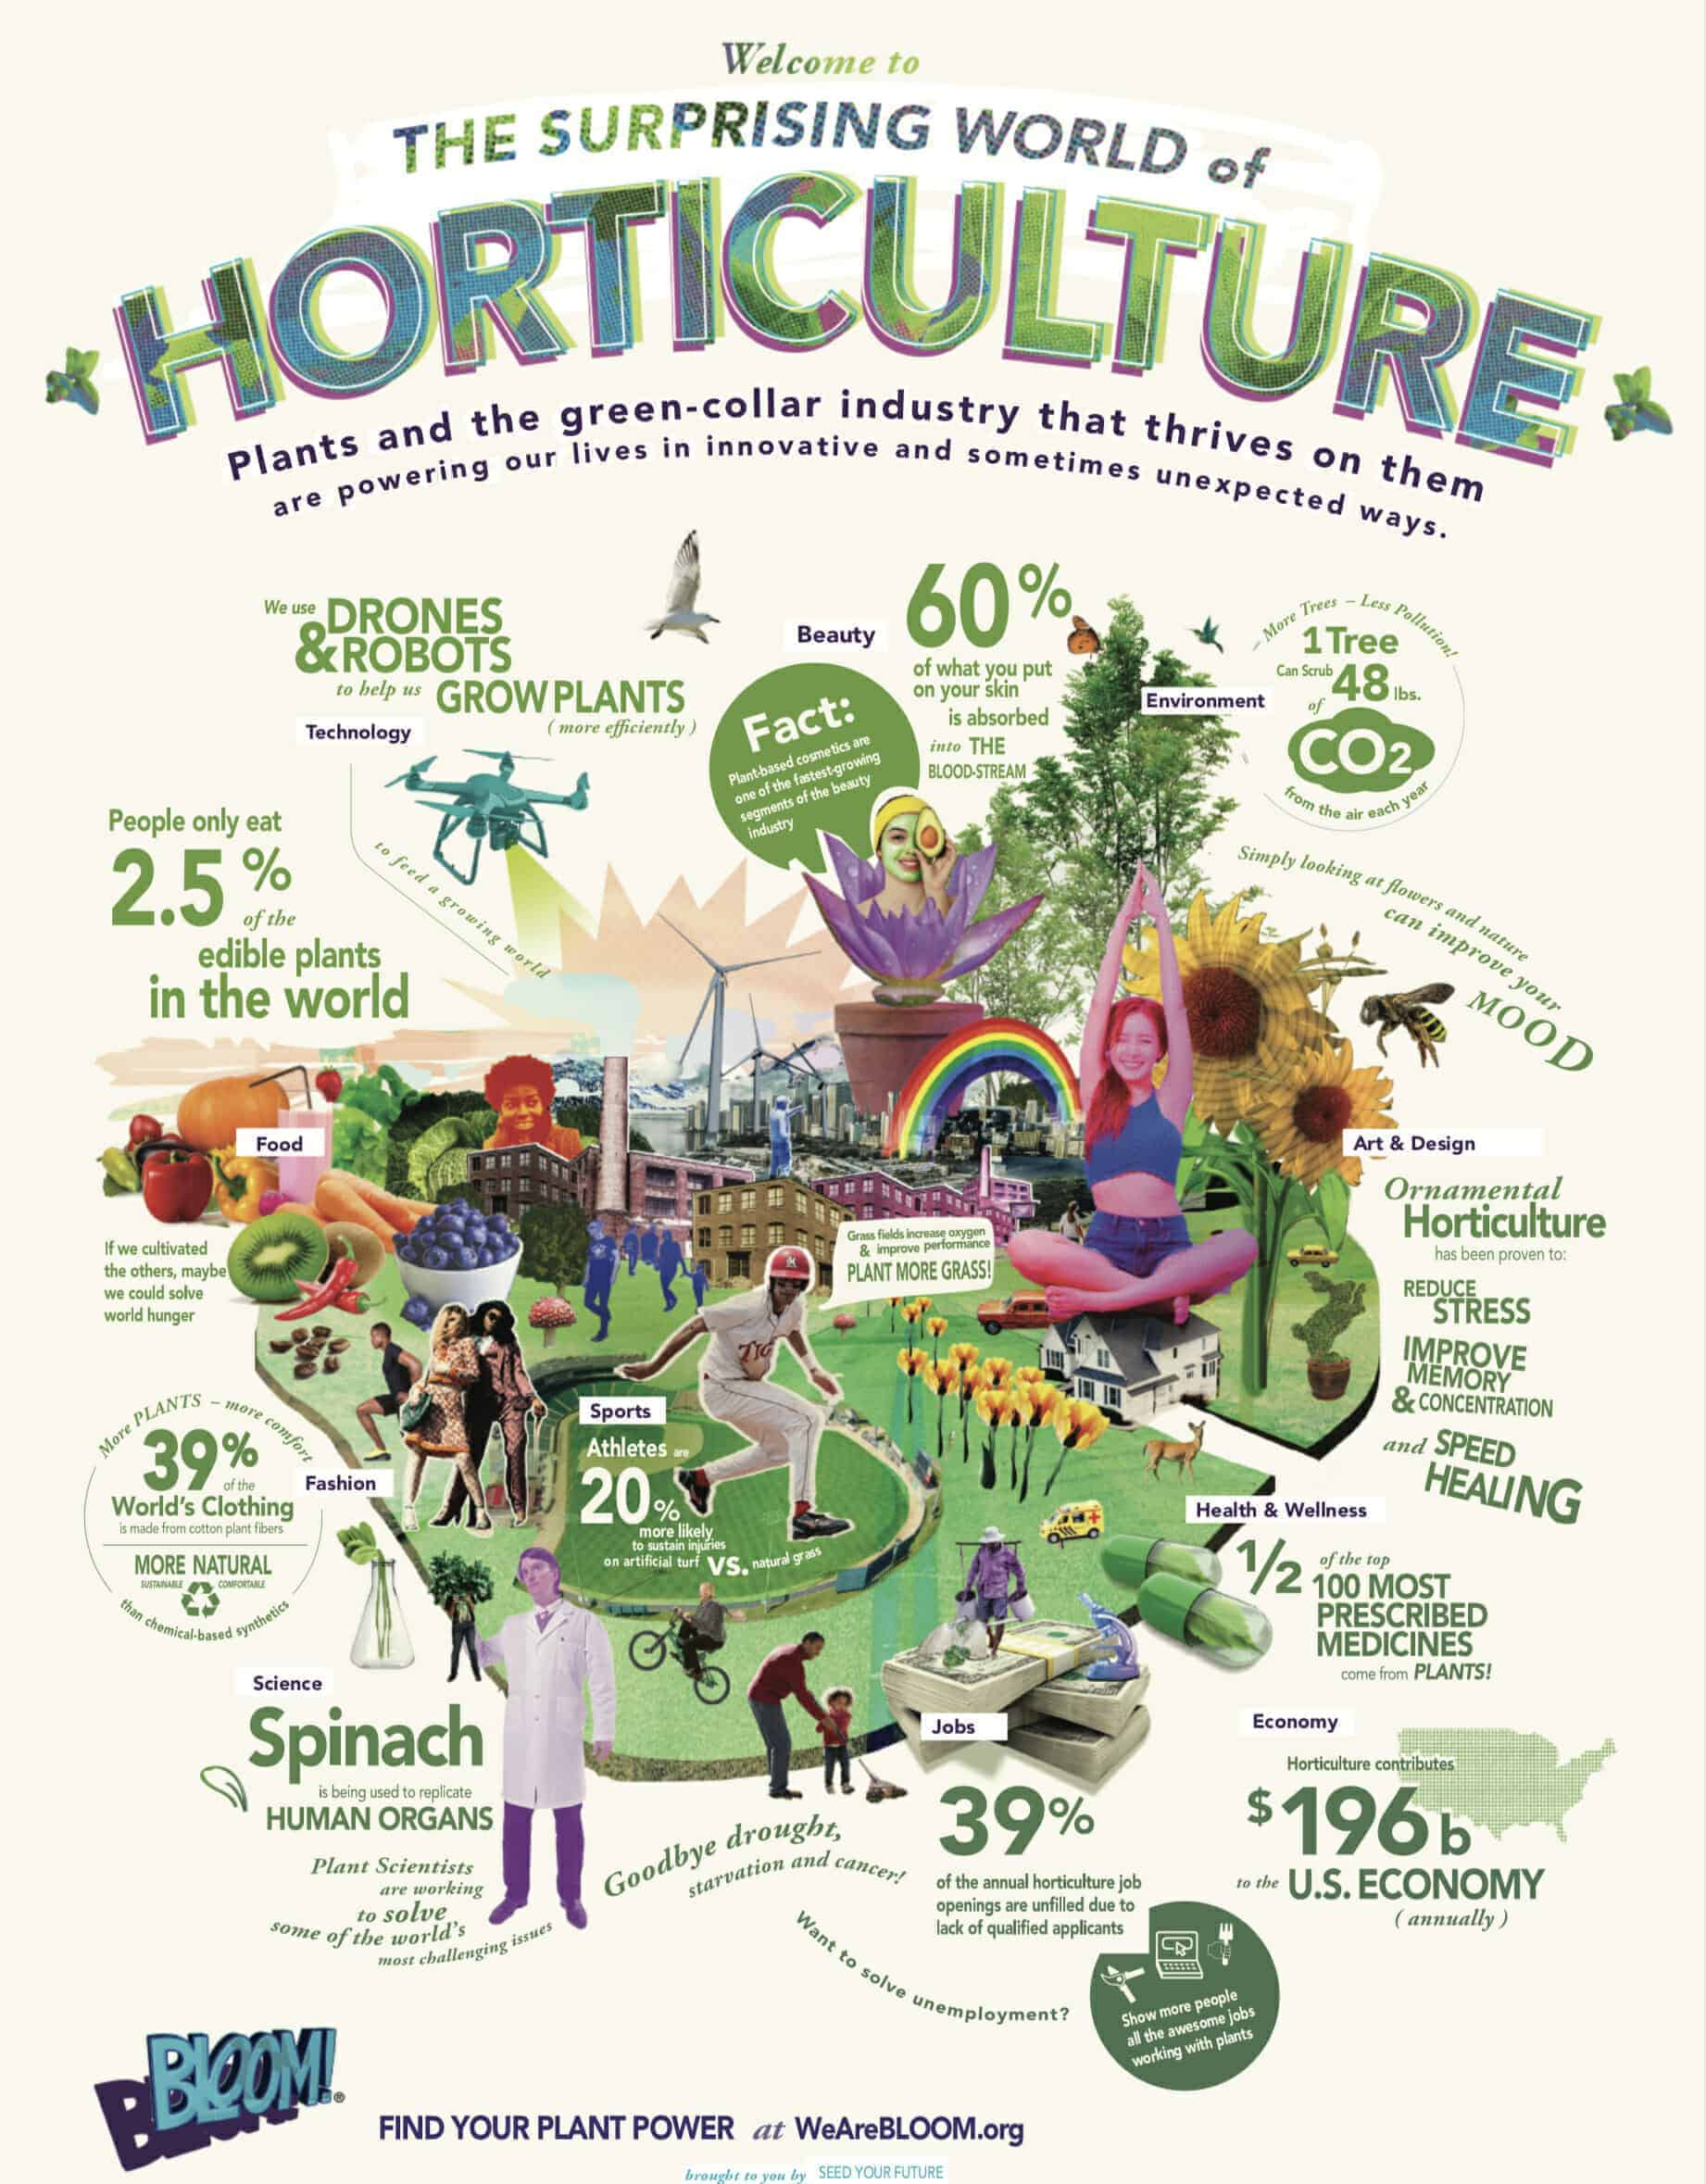 Surprising World of Horticulture BLOOM! Infographic